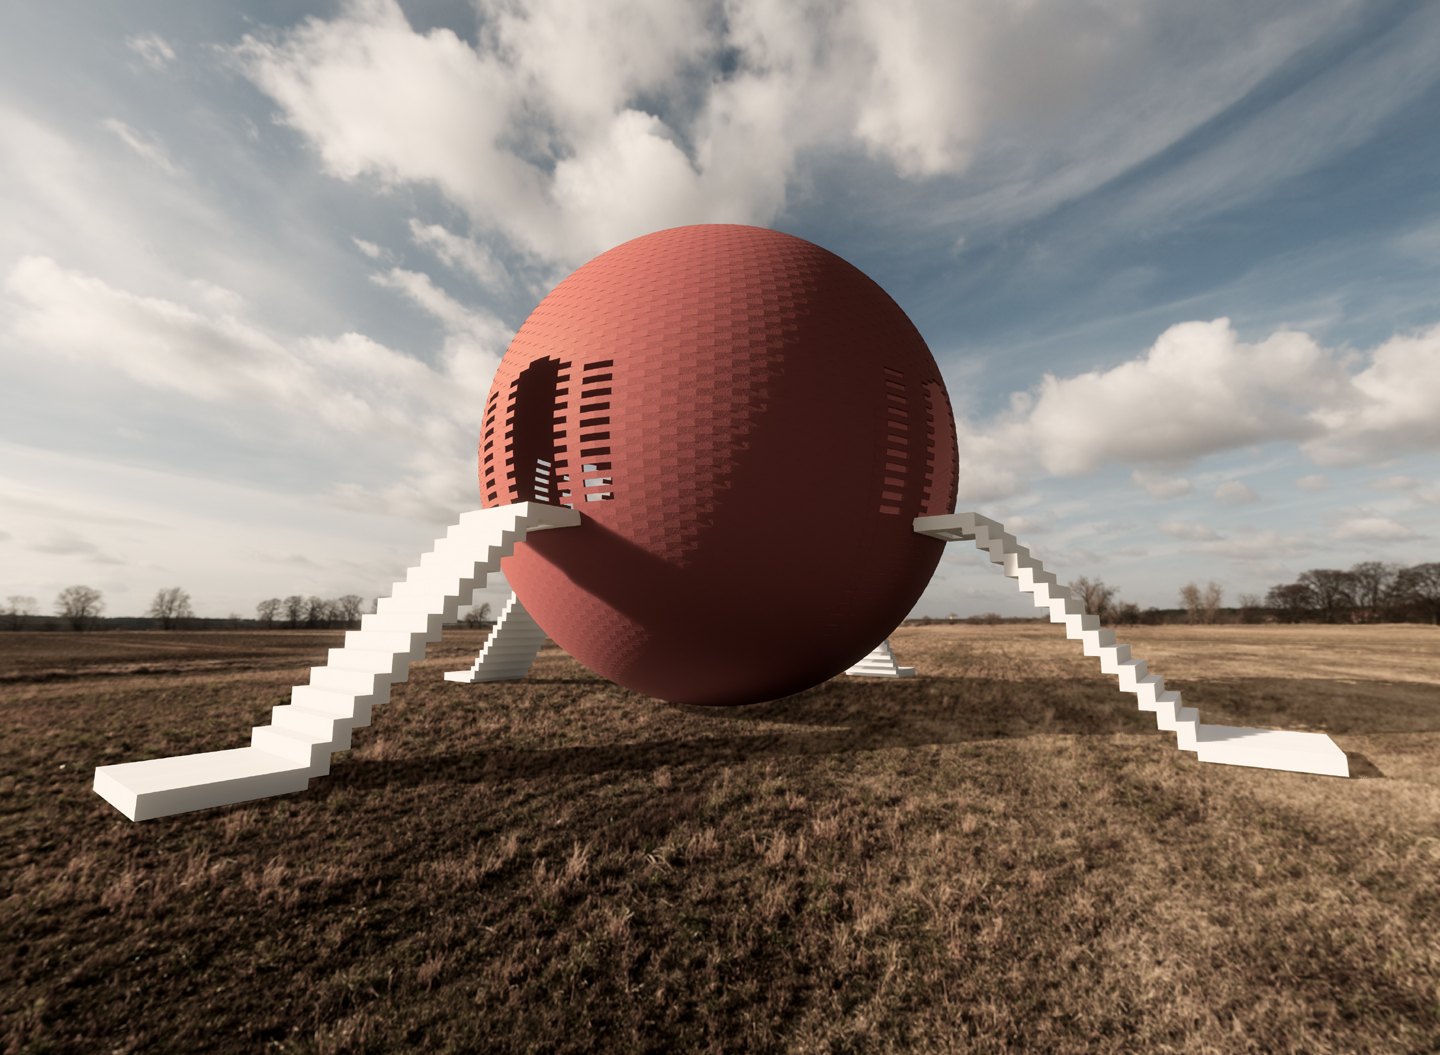 konstantin sphere Rendered 3D scene